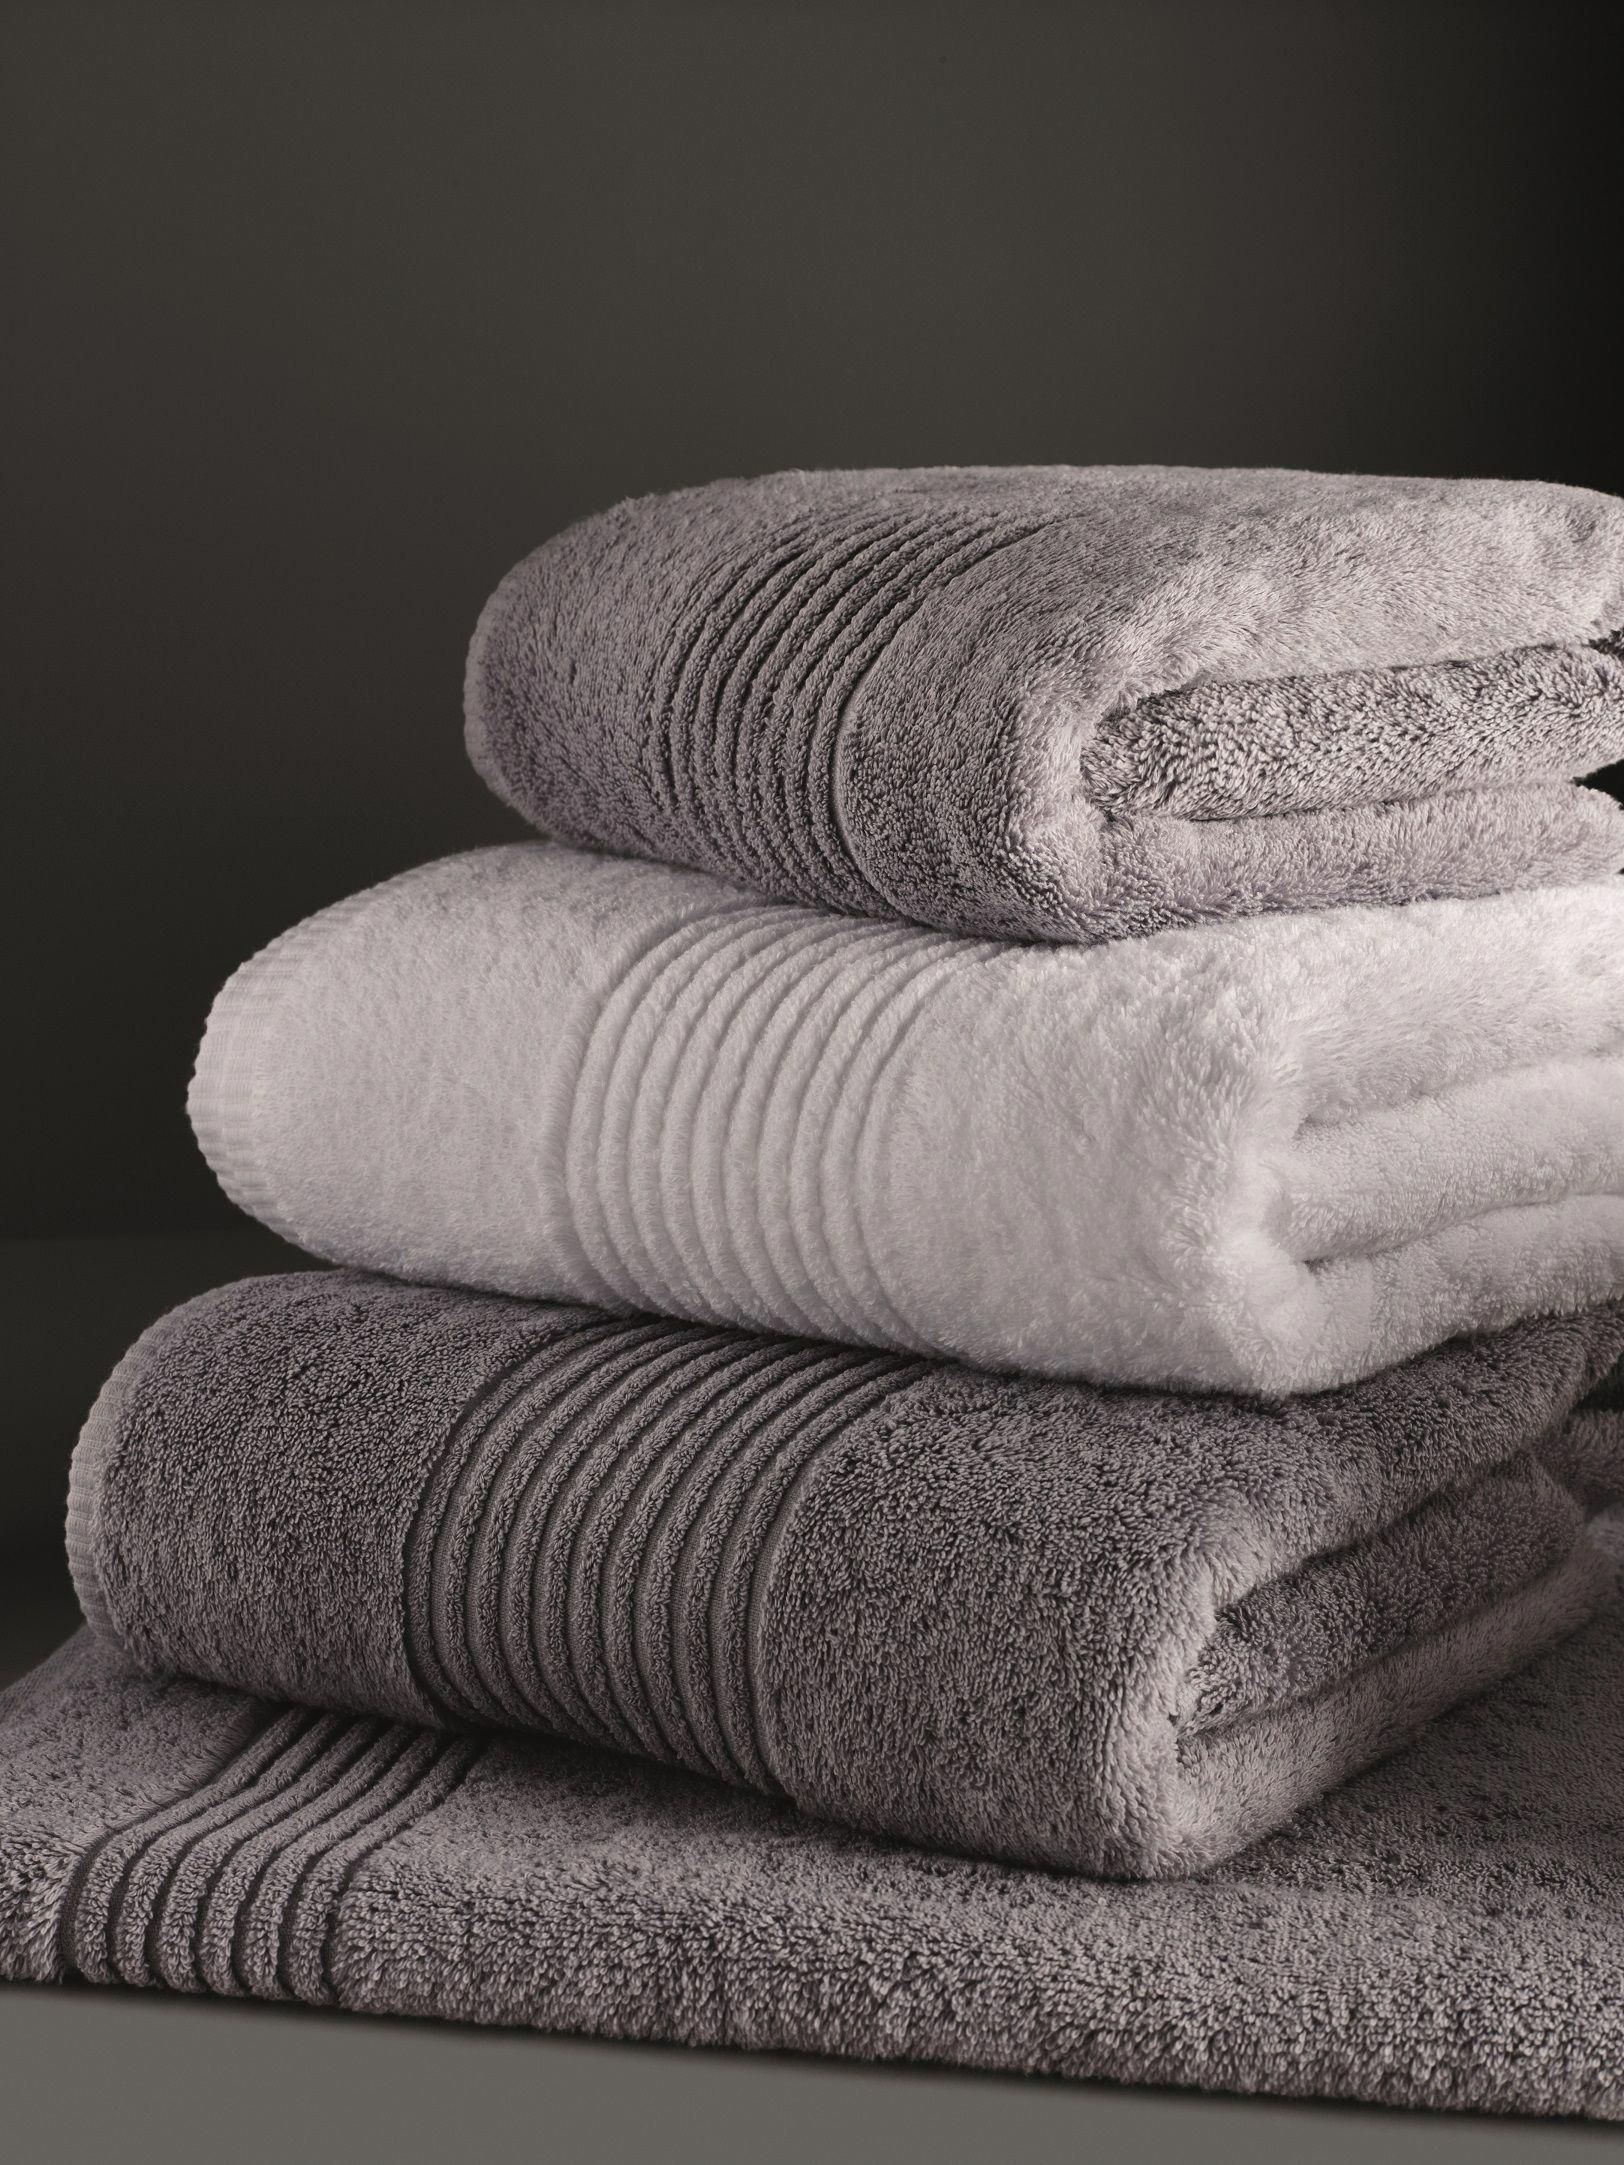 Wrap Yourself In Our Selection Includes Luxurious Egyptian Cotton